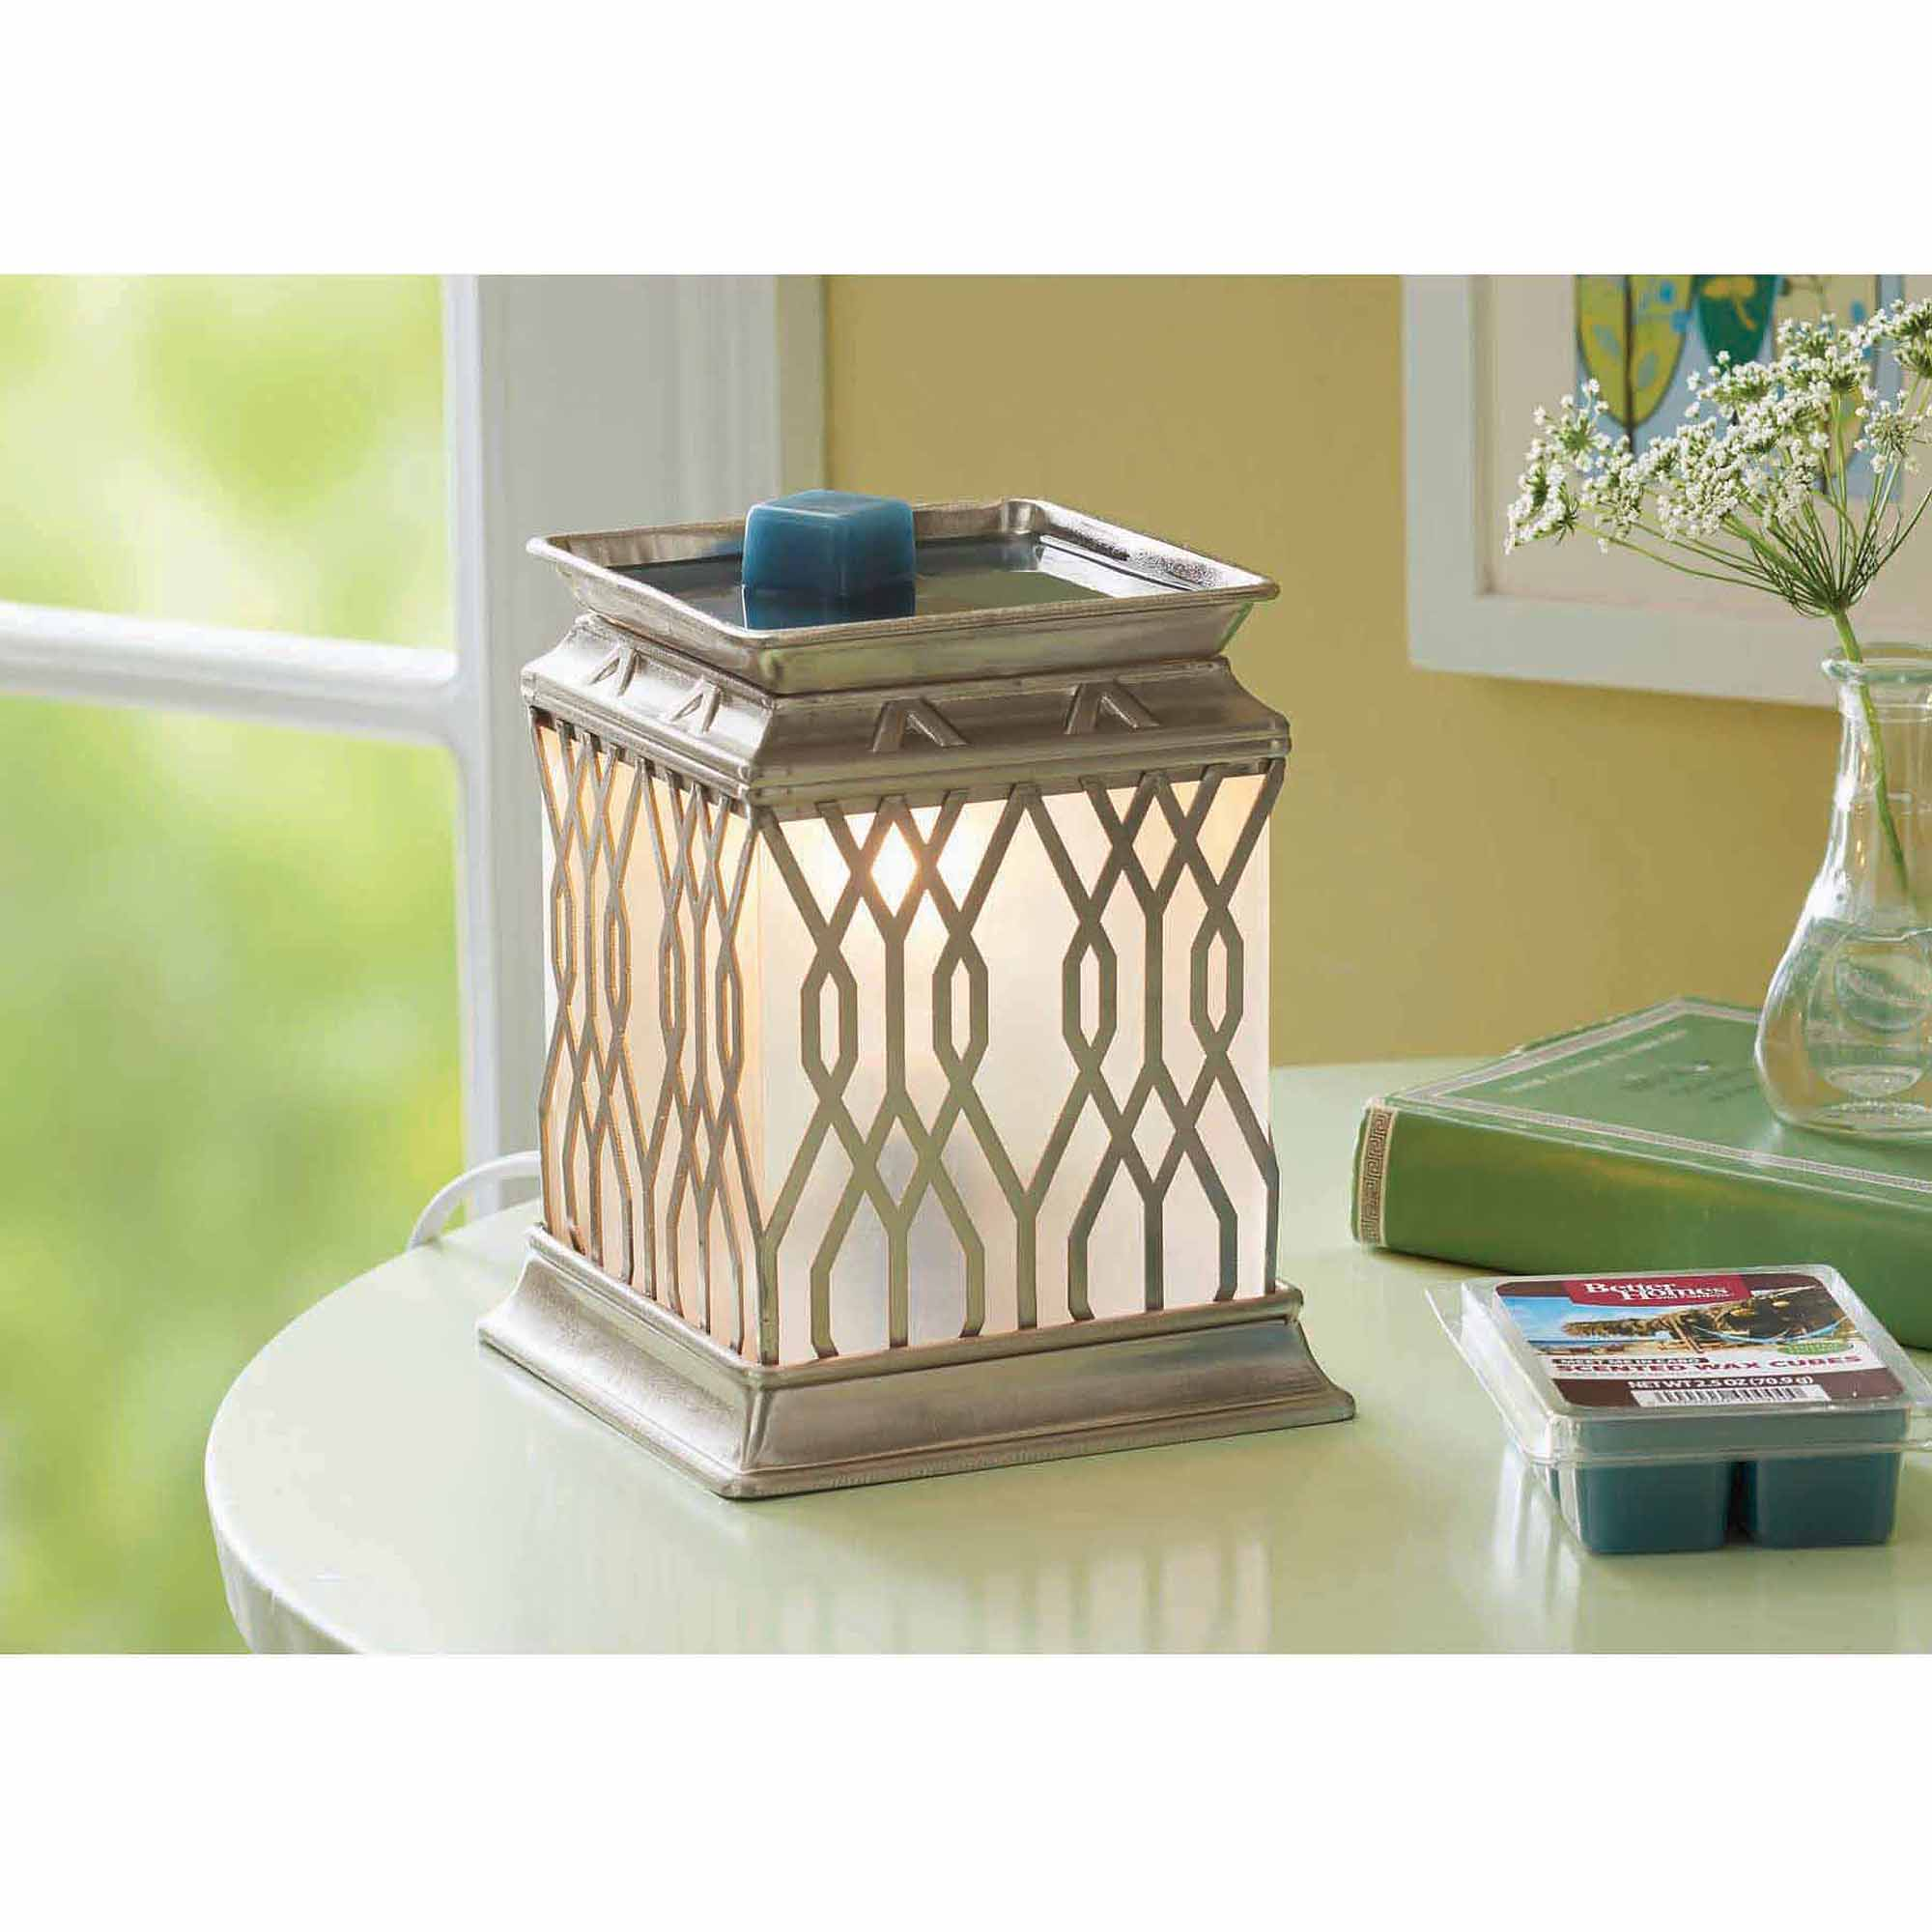 better homes and gardens full-size wax warmer, square trellis